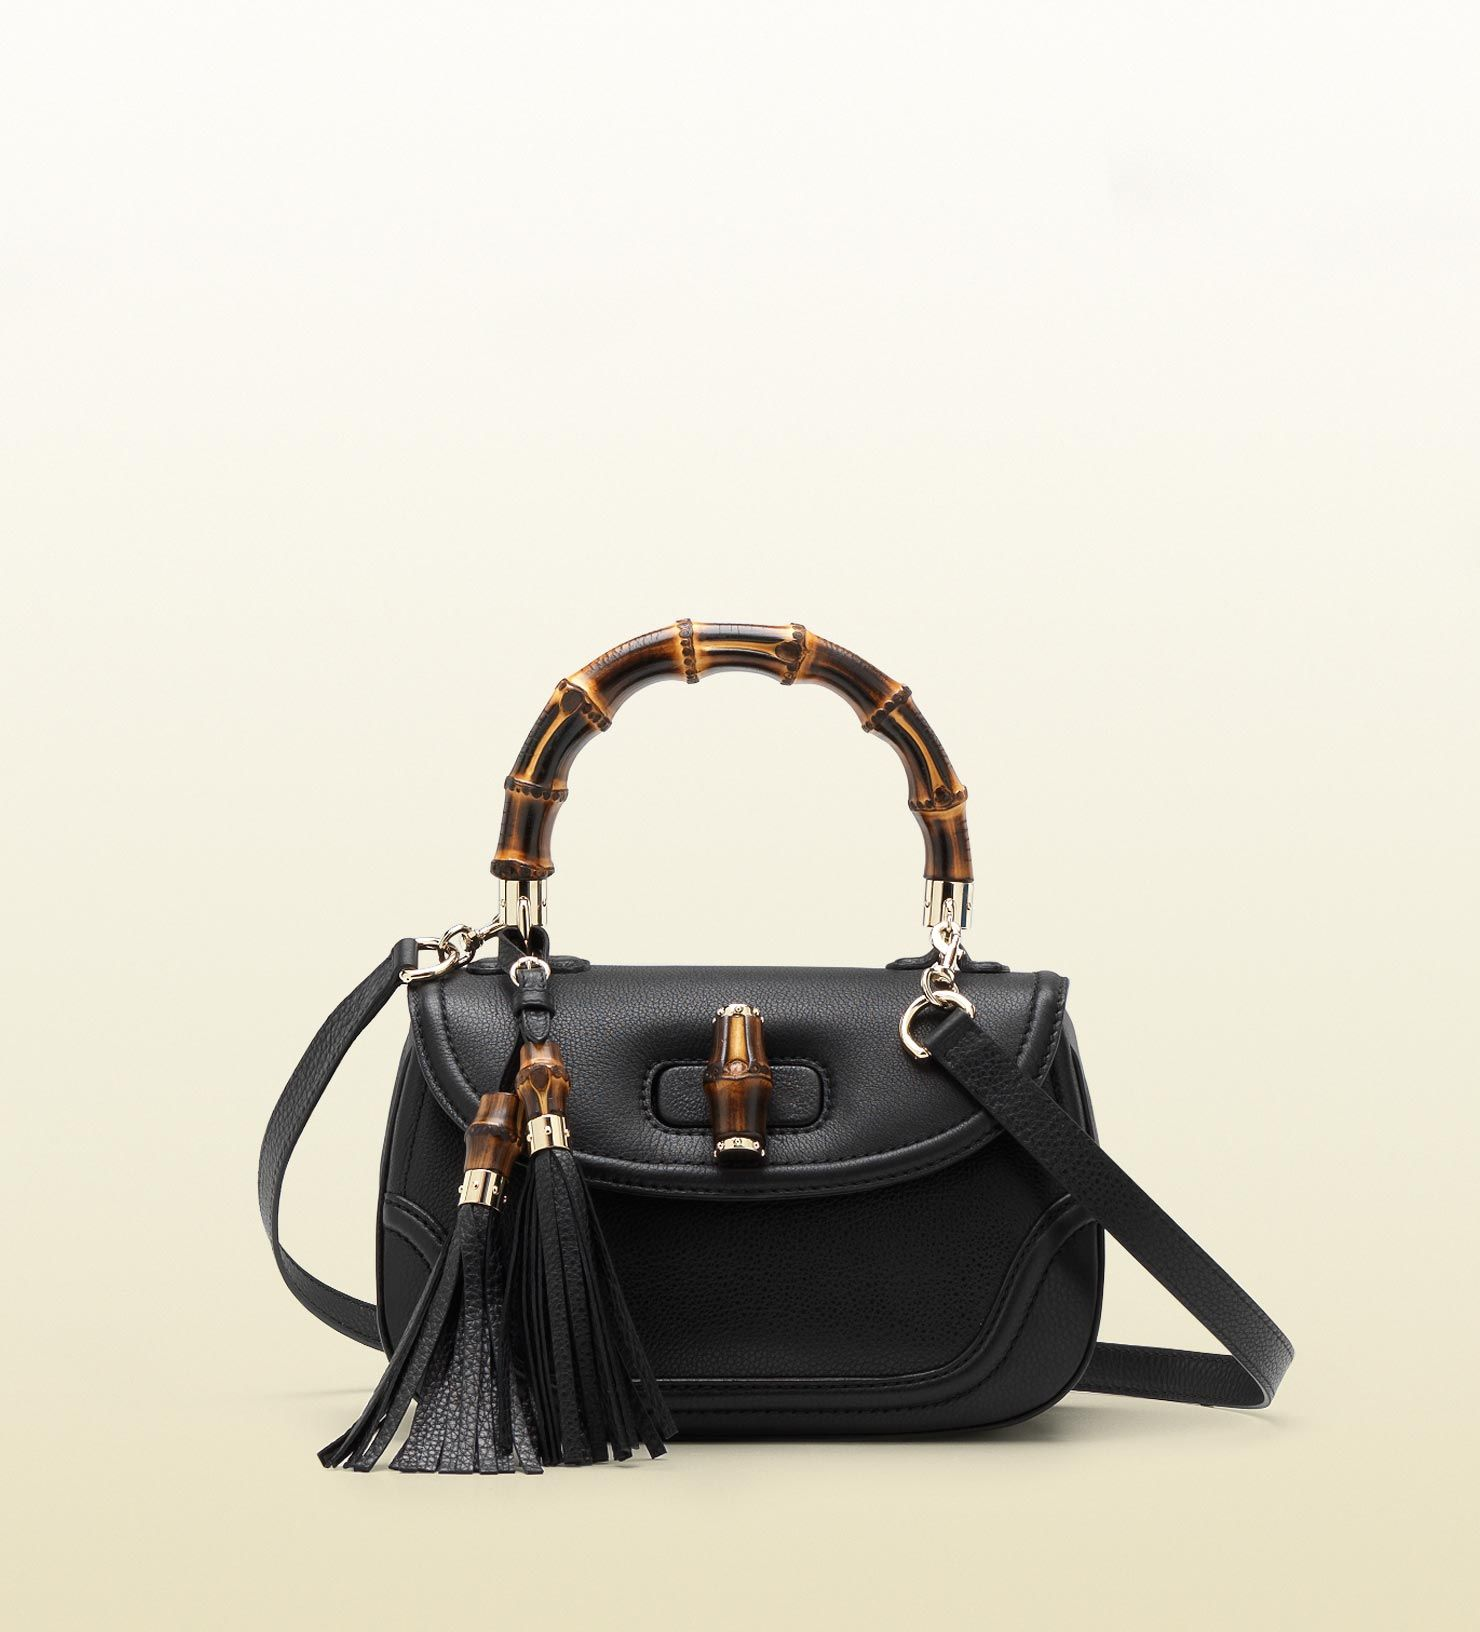 d97c4c4312c7 Gucci bamboo leather top handle bag | It's All In The Bag | Gucci ...